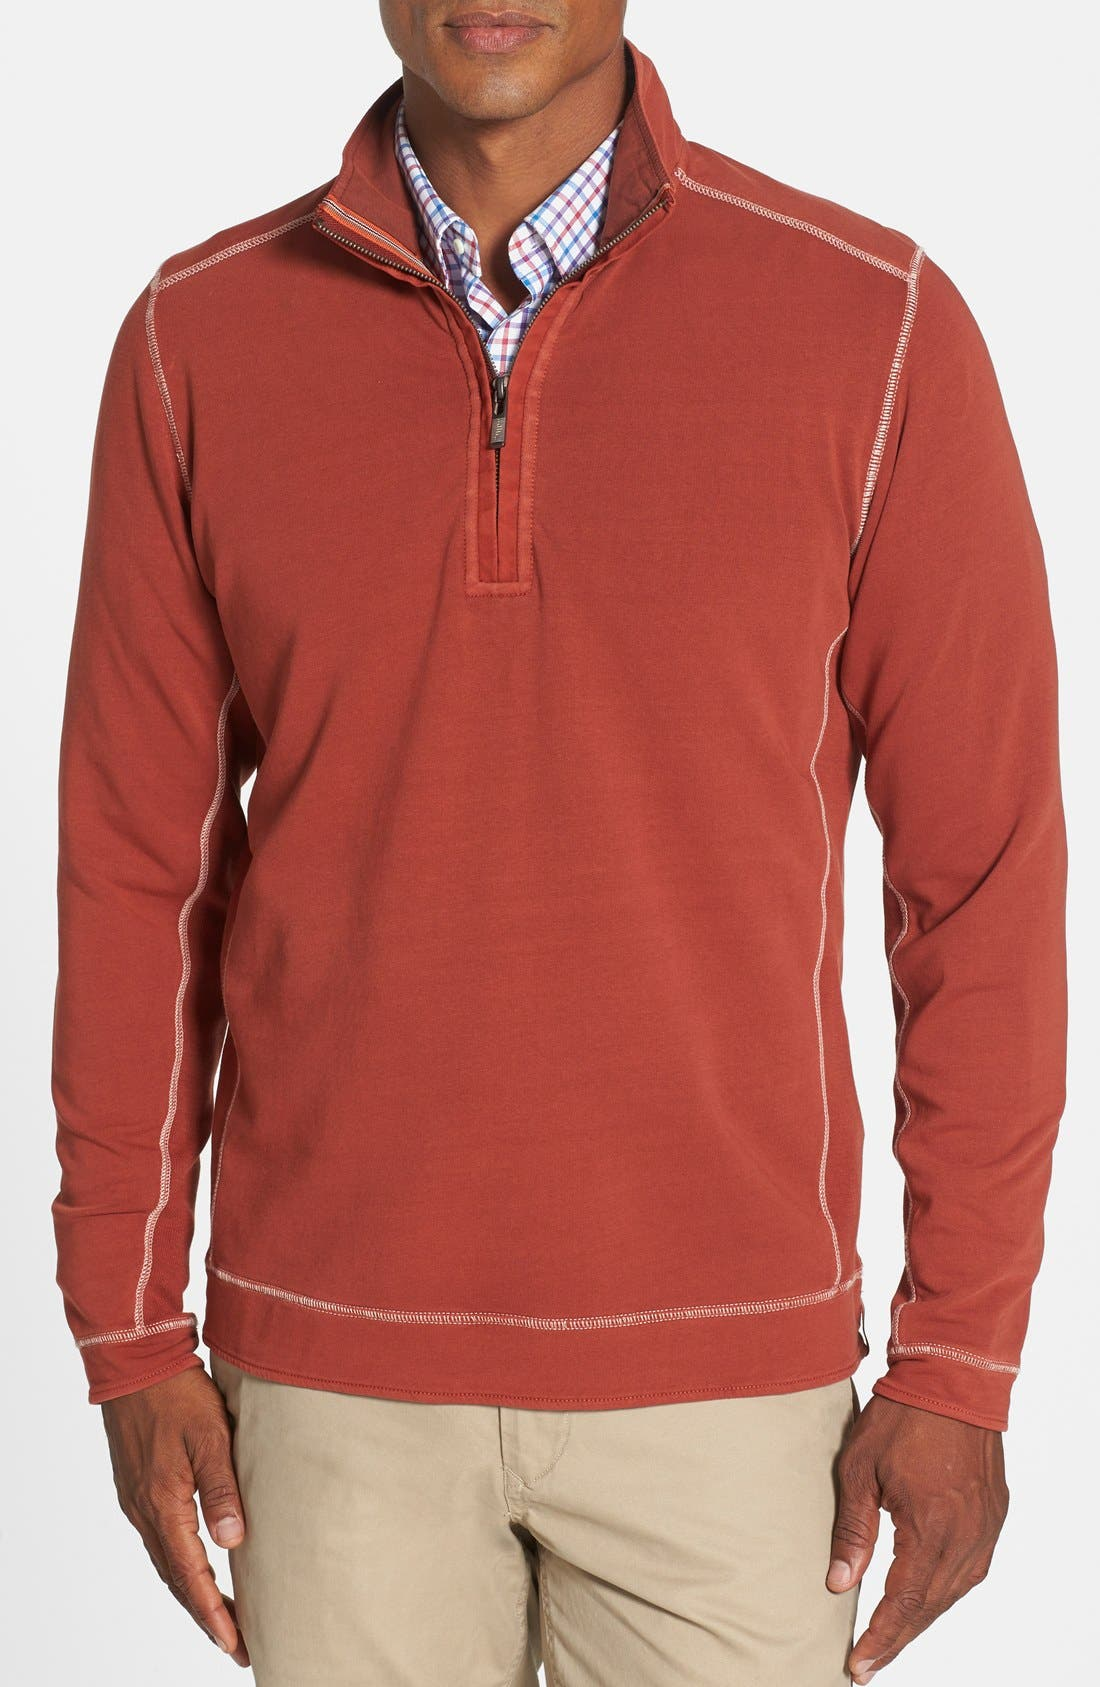 Alternate Image 1 Selected - Tommy Bahama Denim 'New Ben & Terry' Island Modern Fit Half Zip Pullover